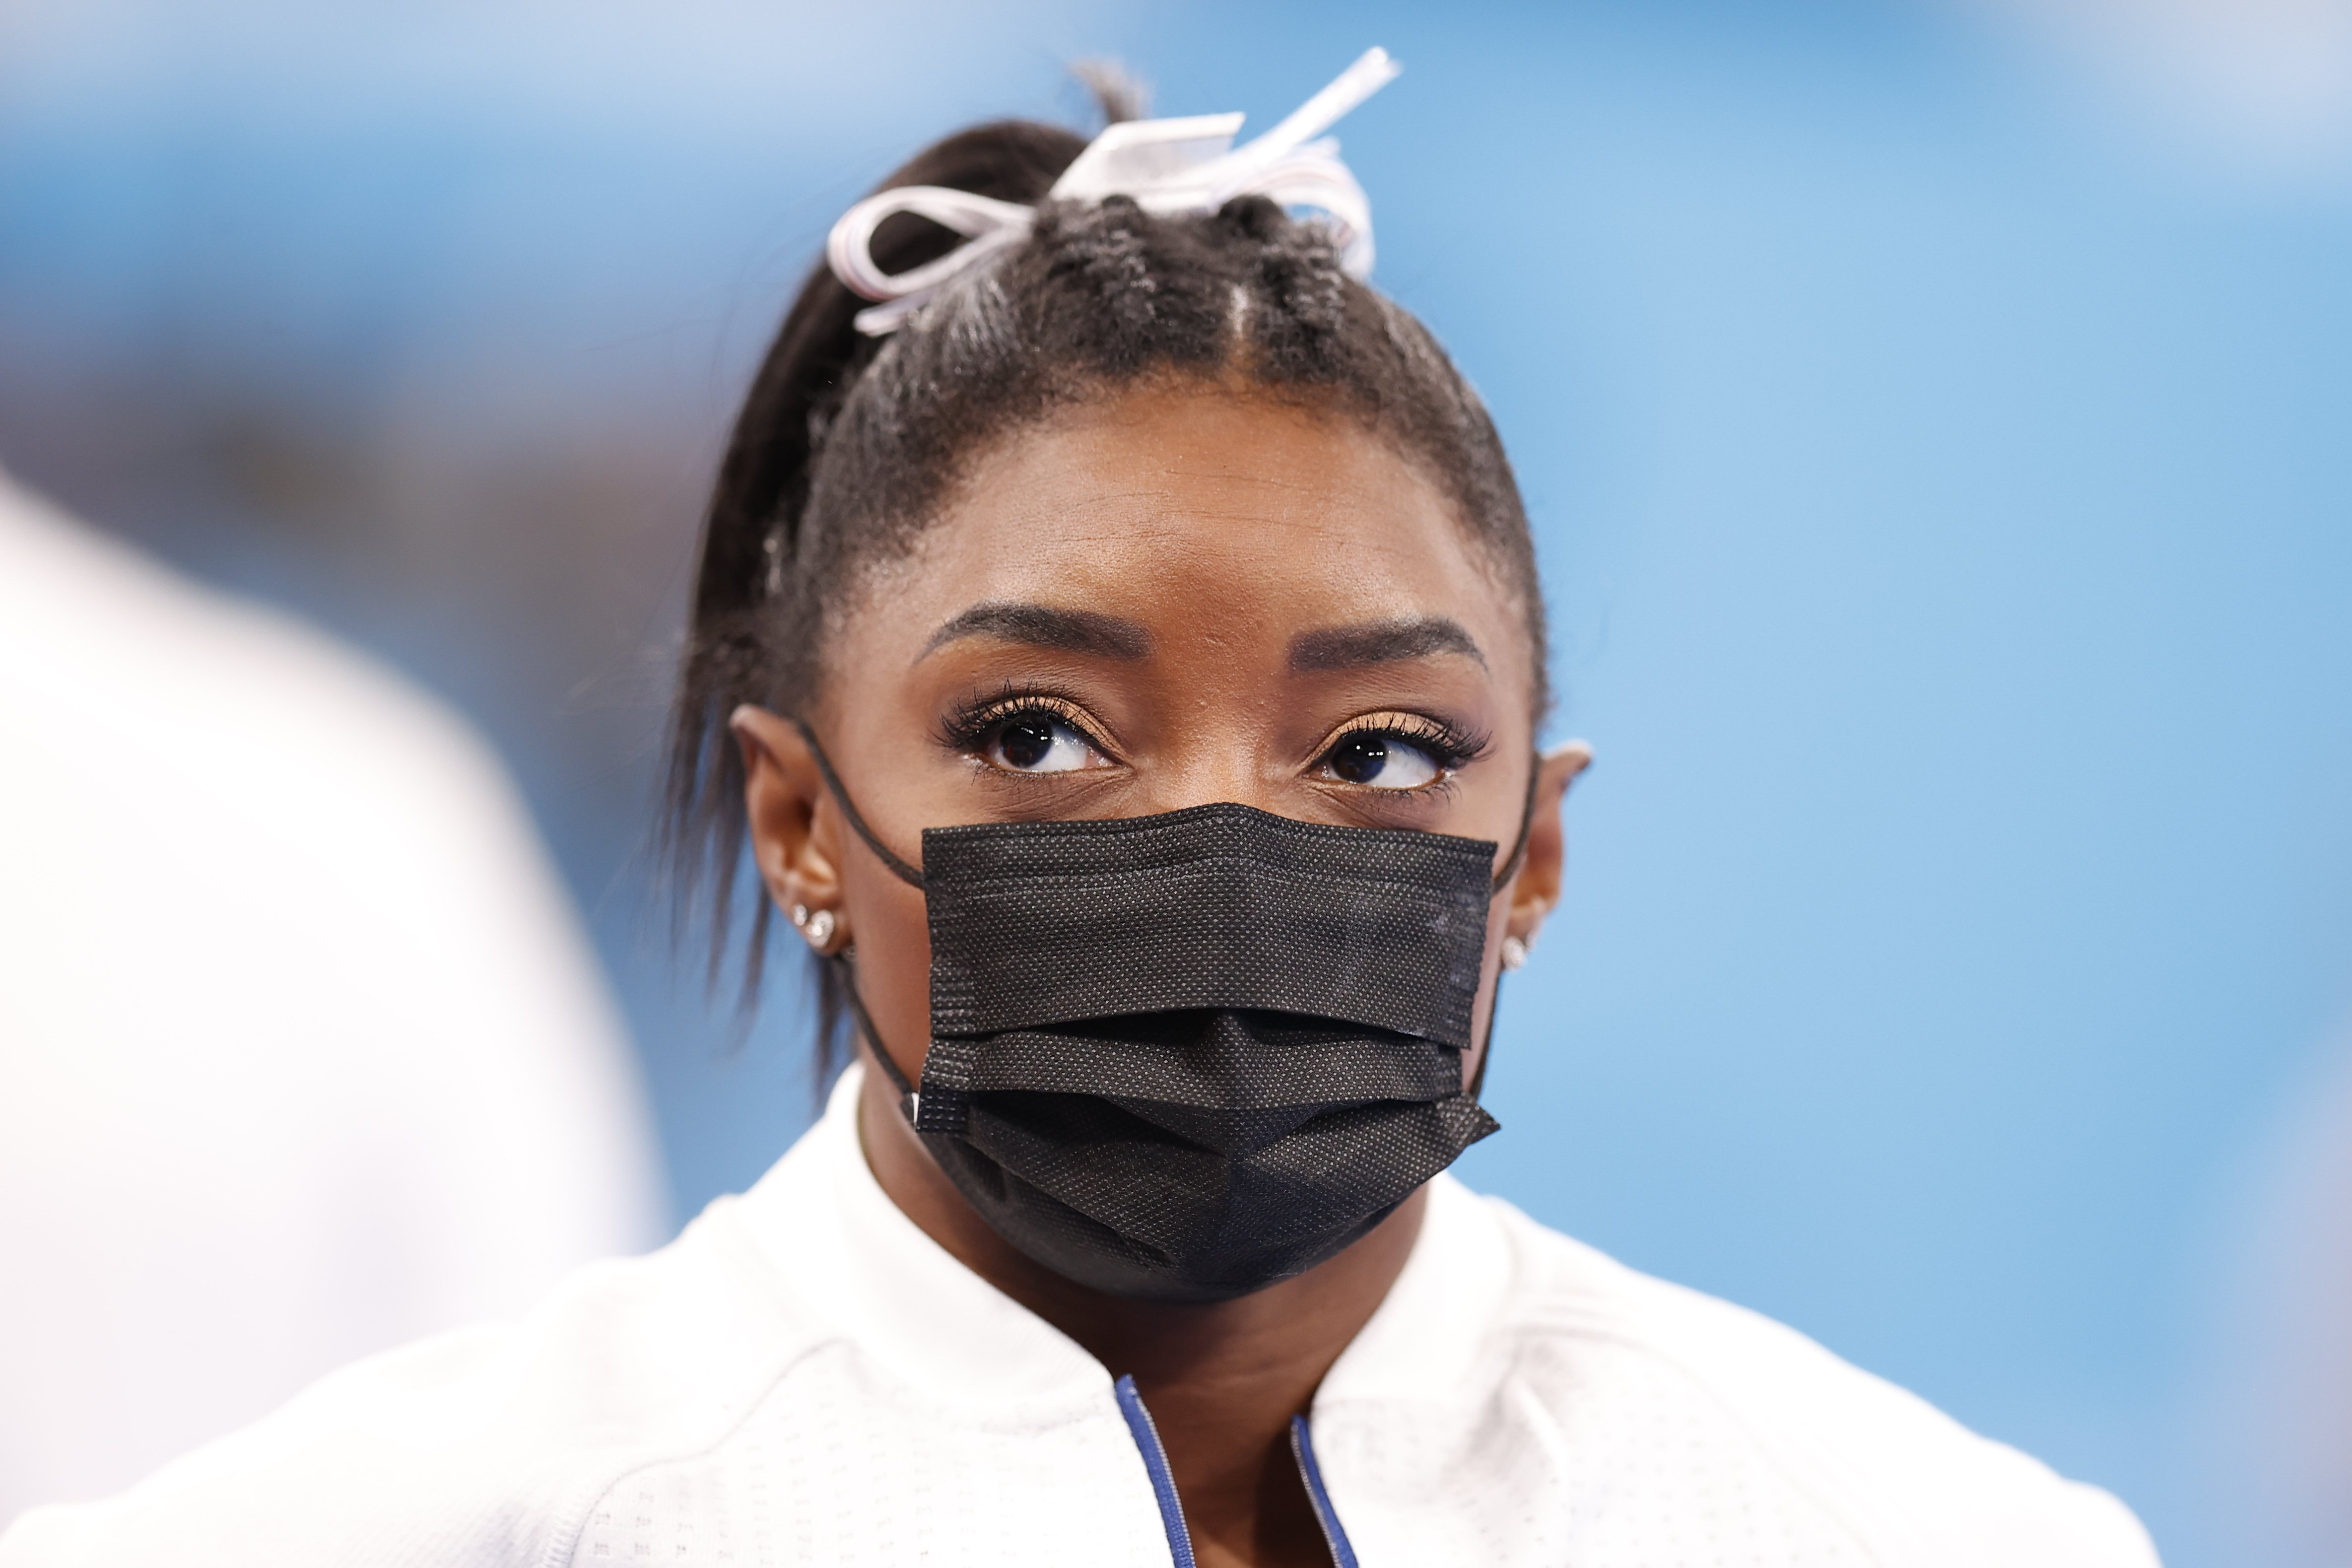 Simone Biles of Team United States looks on during the Women's Team Final on day four of the Tokyo 2020 Olympic Games at Ariake Gymnastics Centre on July 27, 2021 in Tokyo, Japan.| Source: Getty Images